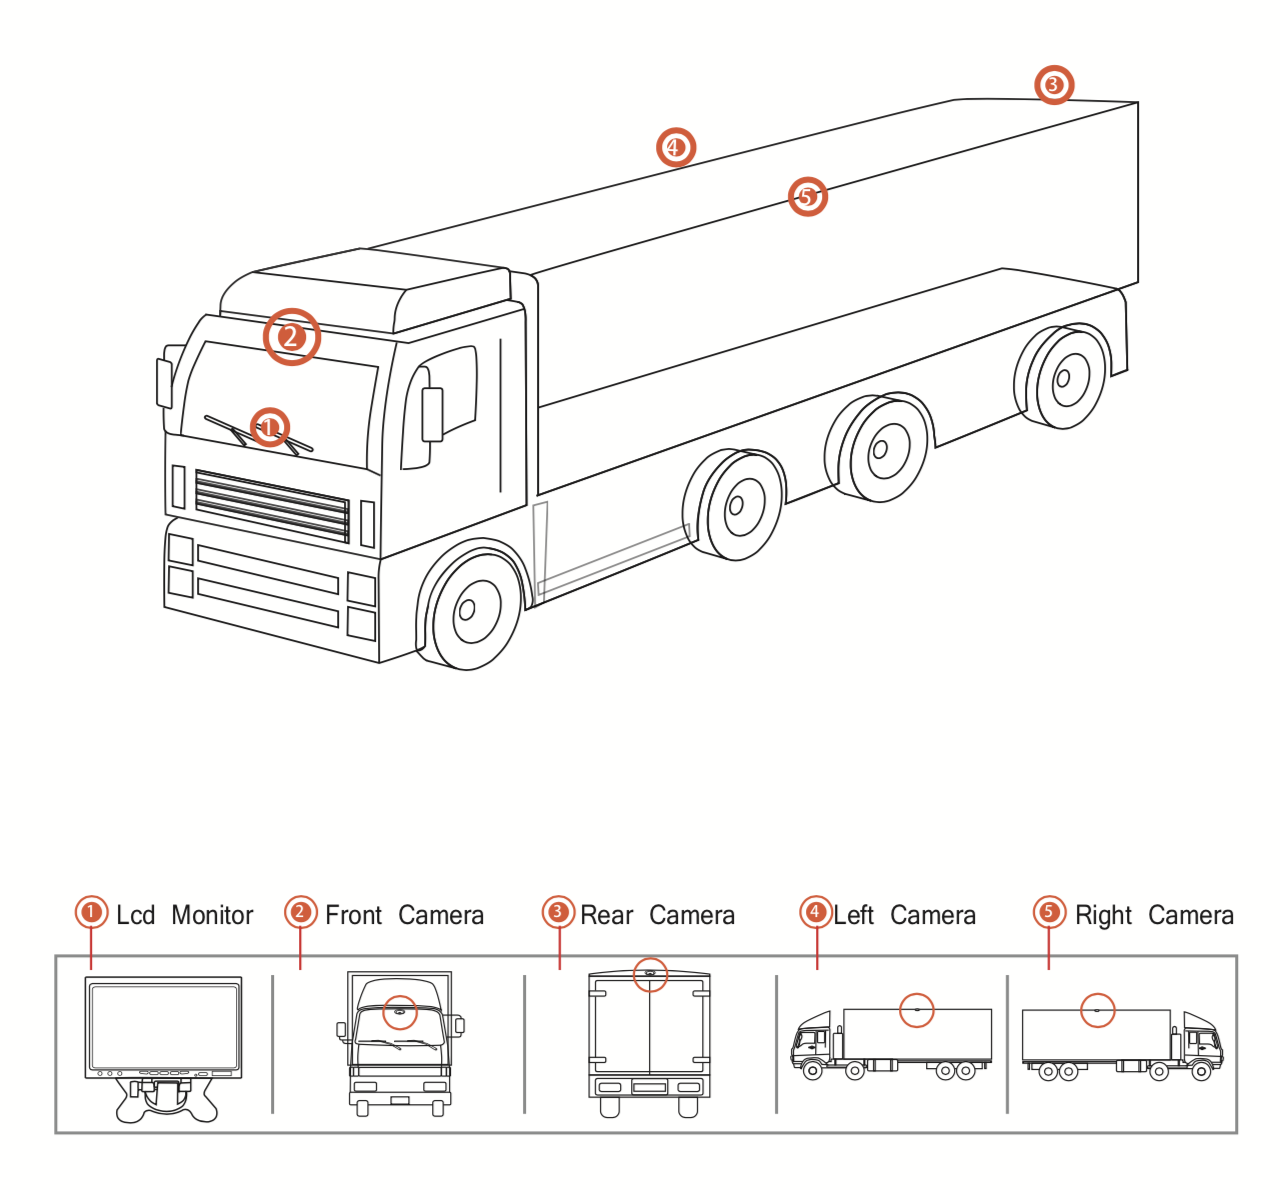 HGV/LGV - Standard example of the camera configuration for a HGV or LGV.